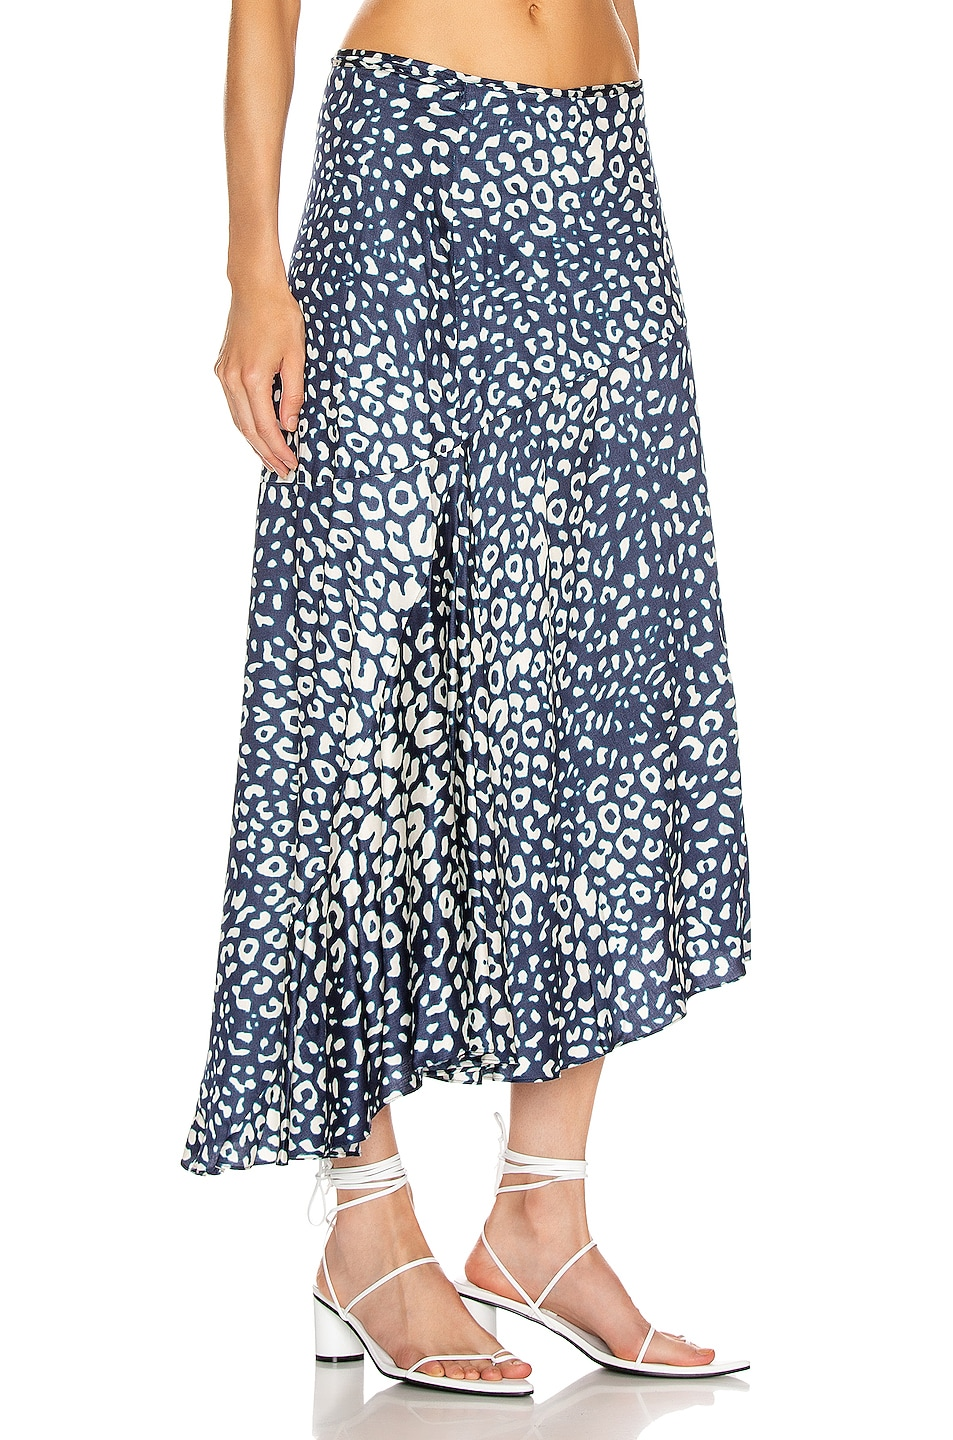 Image 2 of Alexis Fontaine Skirt in Marine Leopard